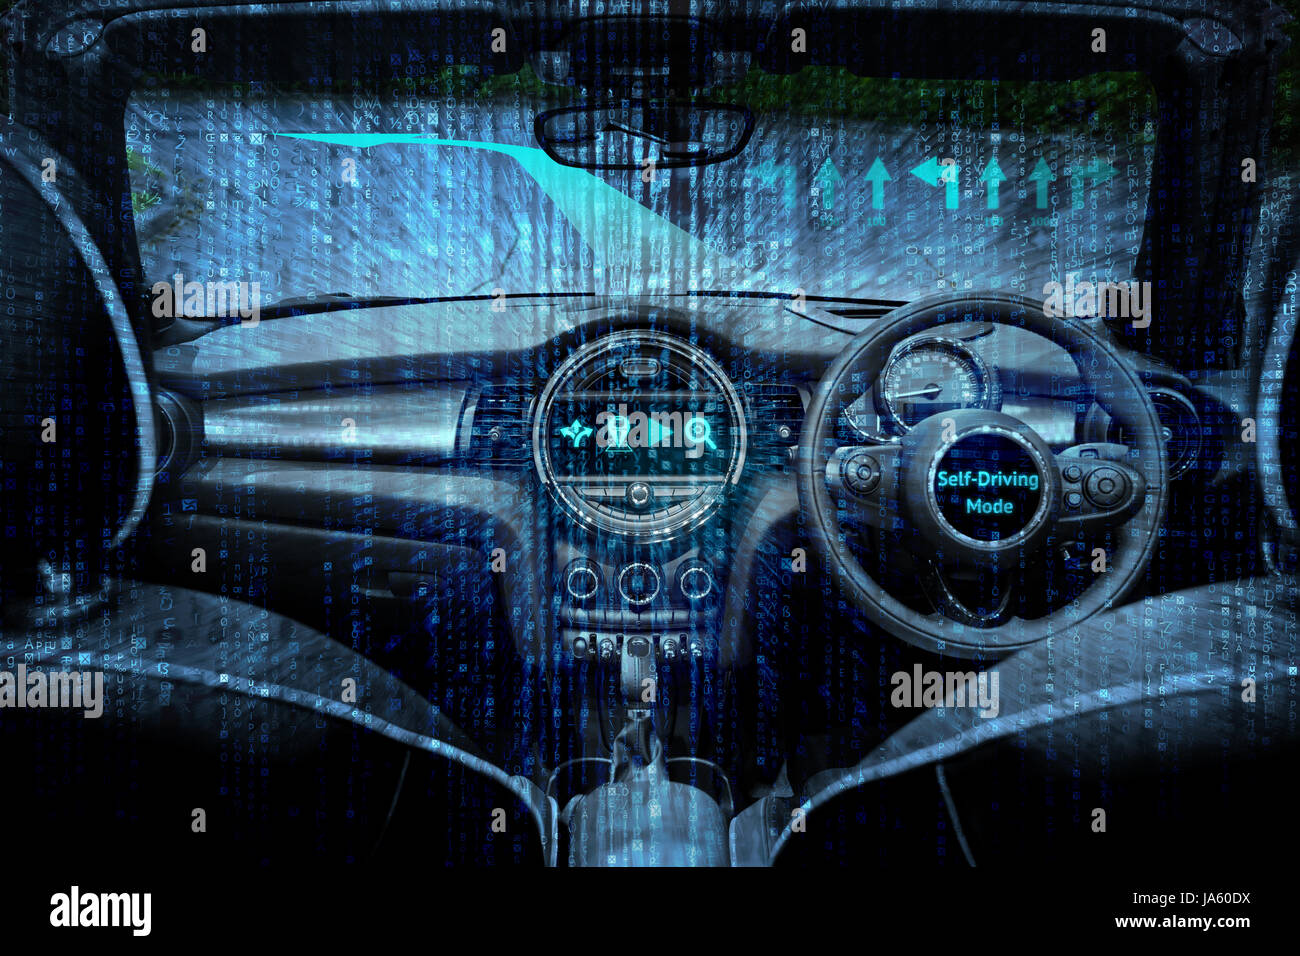 Smart car (HUD) and augmented reality navigation technology concept. Empty cockpit in vehicle and Self-Driving mode - Stock Image